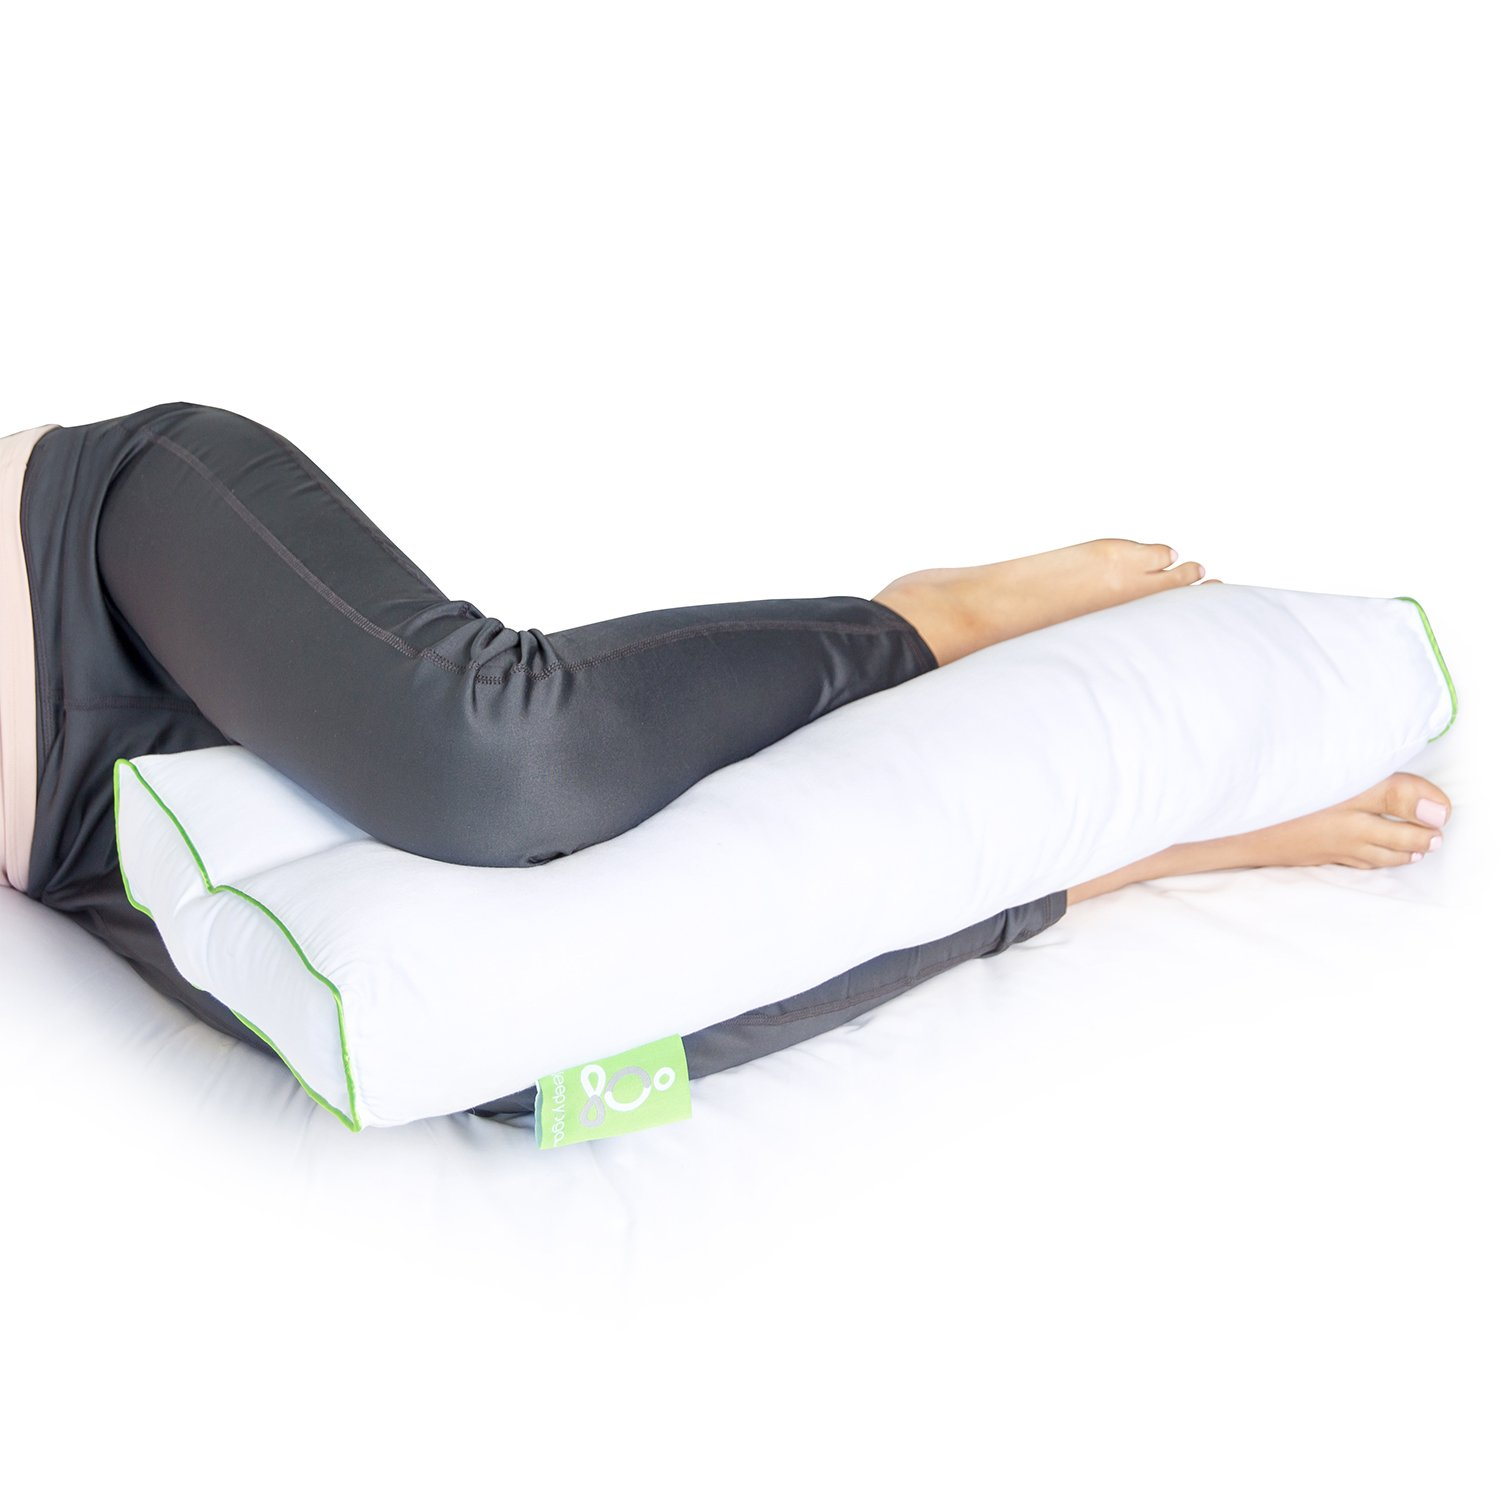 Sleep Yoga Leg Back Sleepers & Side Sleepers, Ergonomically Designed Down Alternative Between & Under Pillow for Knee Support, Hypoallergenic & Washable, 26'' x 13'' x 3''/One Size, White by Sleep Yoga